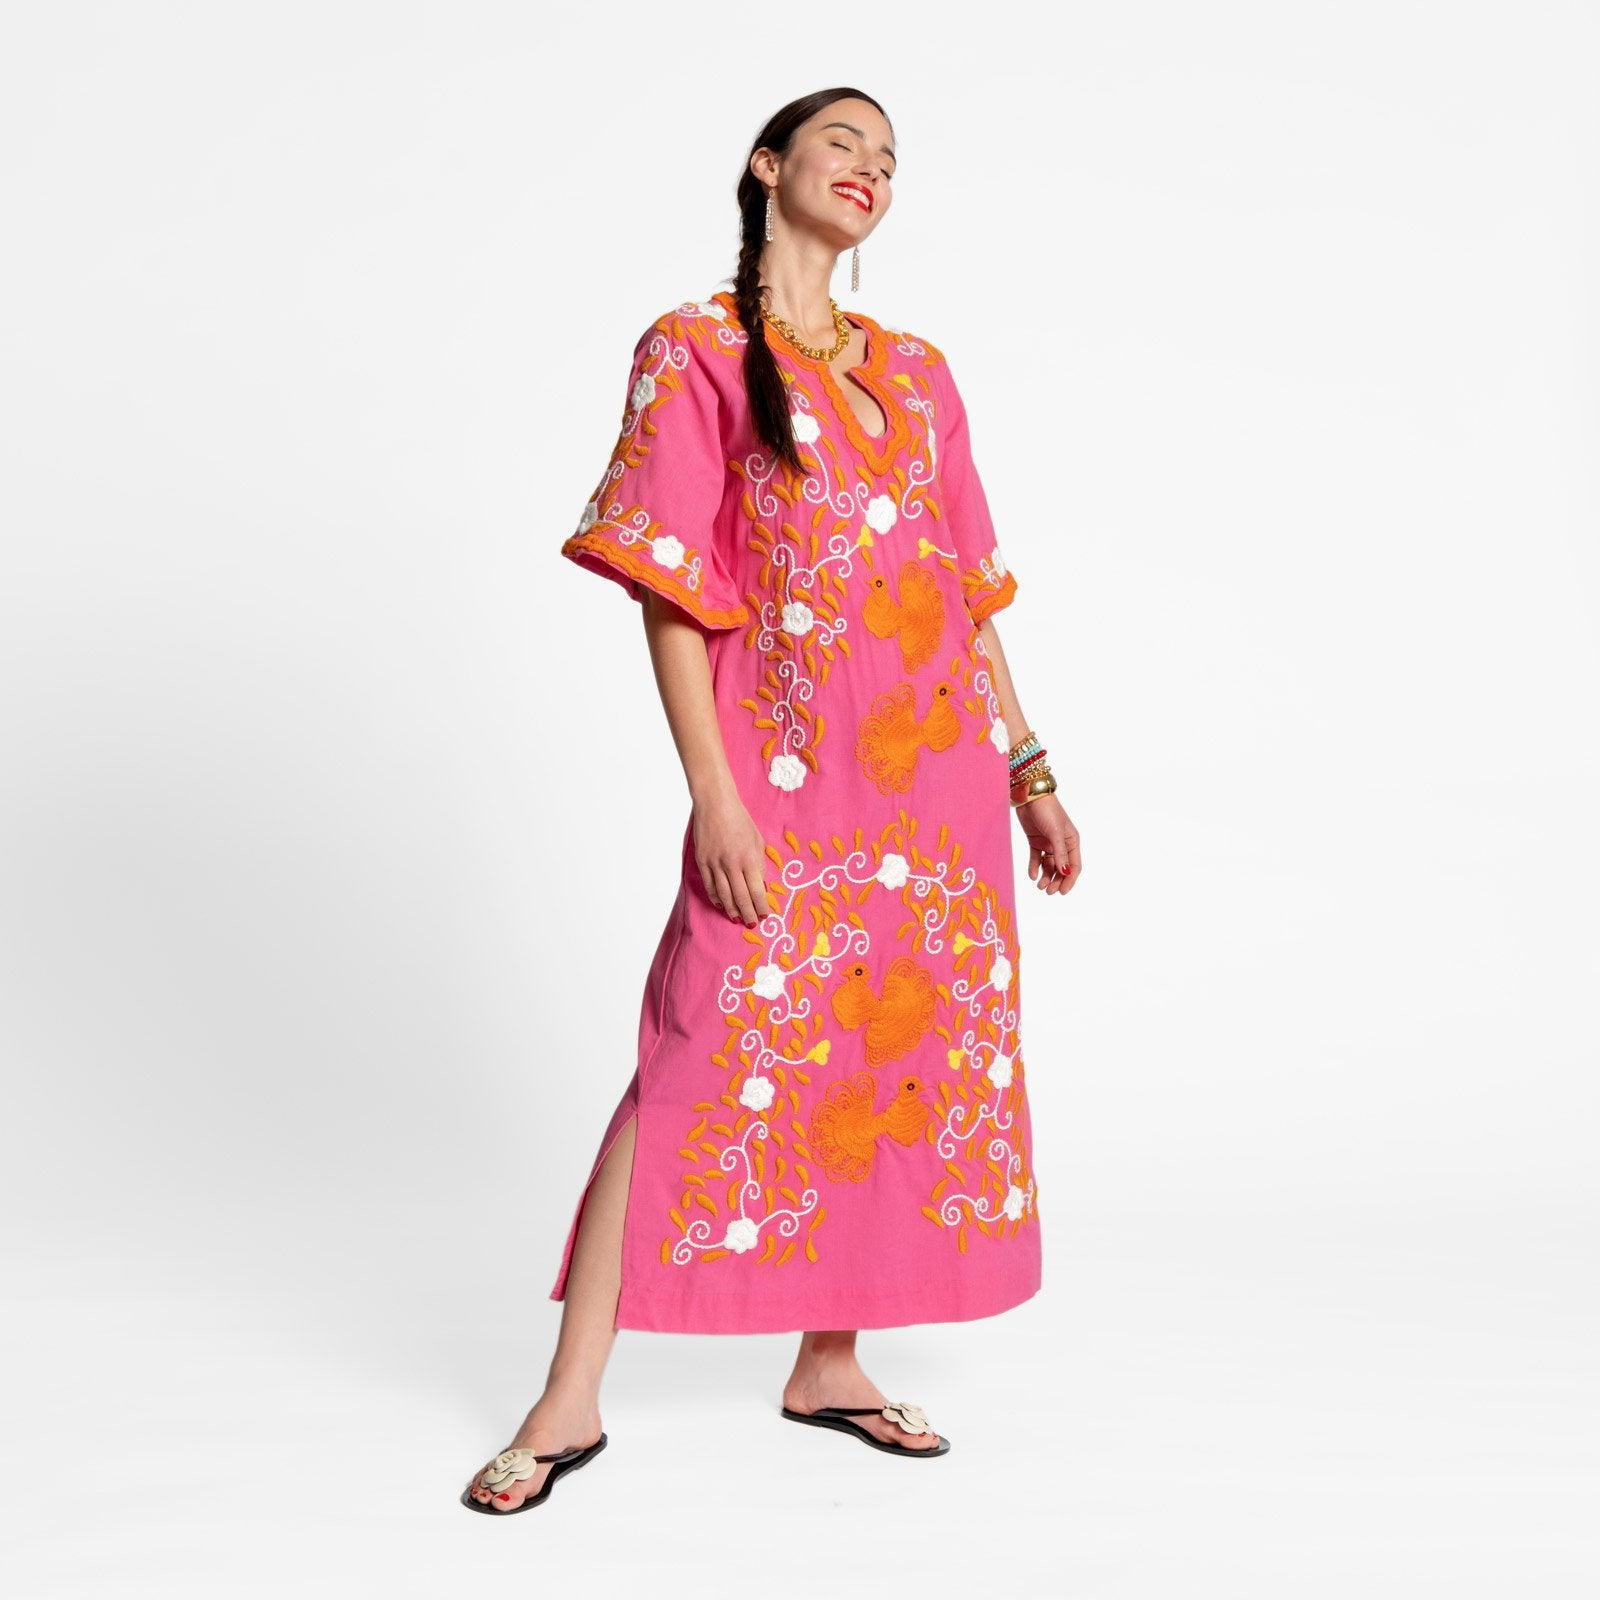 Peacock Caftan Dress Pink Coral Yellow - Frances Valentine